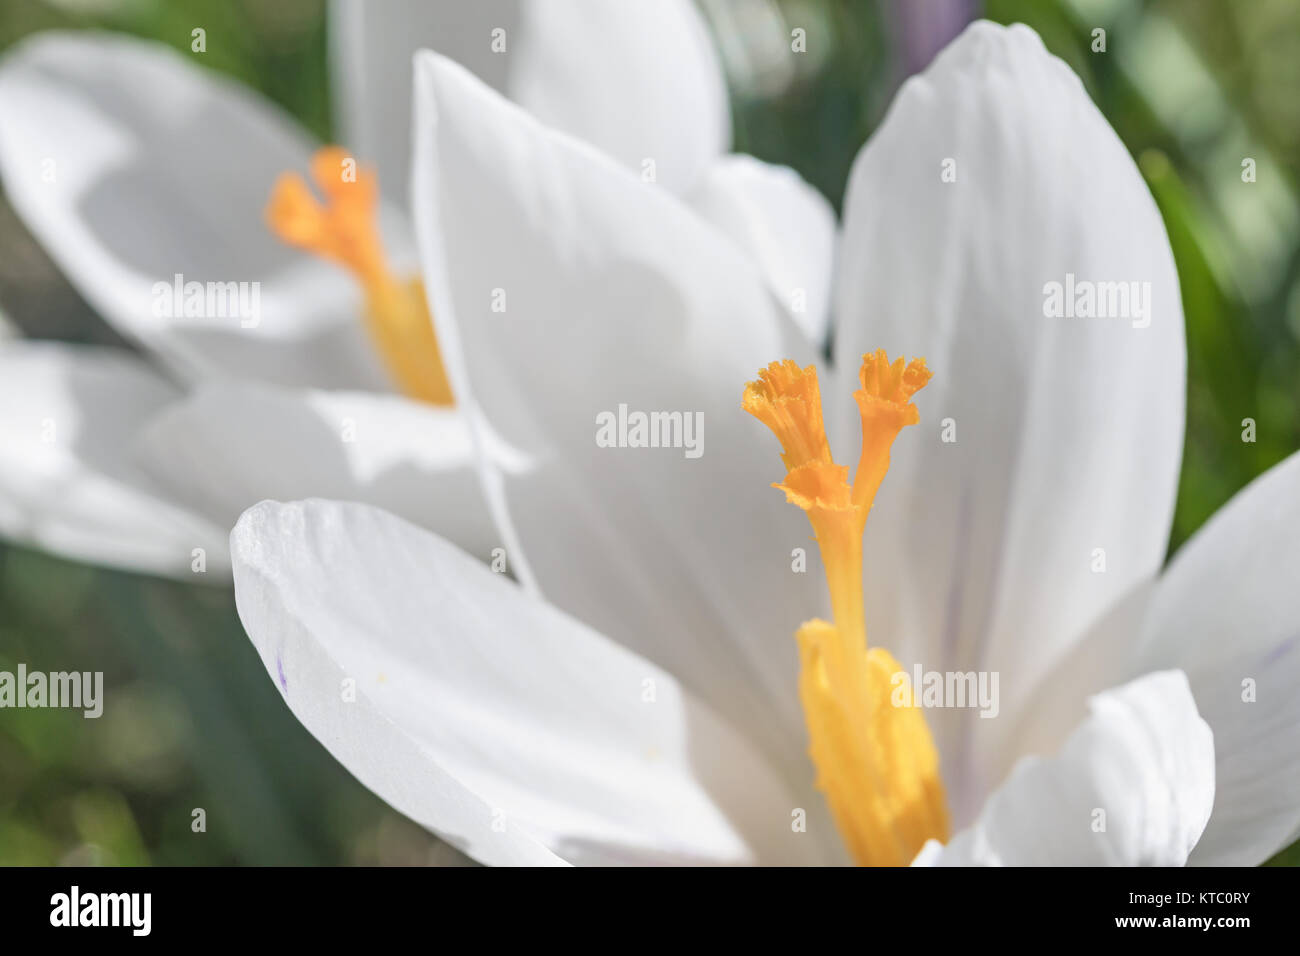 Closeup view of white crocus flower stock photo 169909151 alamy closeup view of white crocus flower mightylinksfo